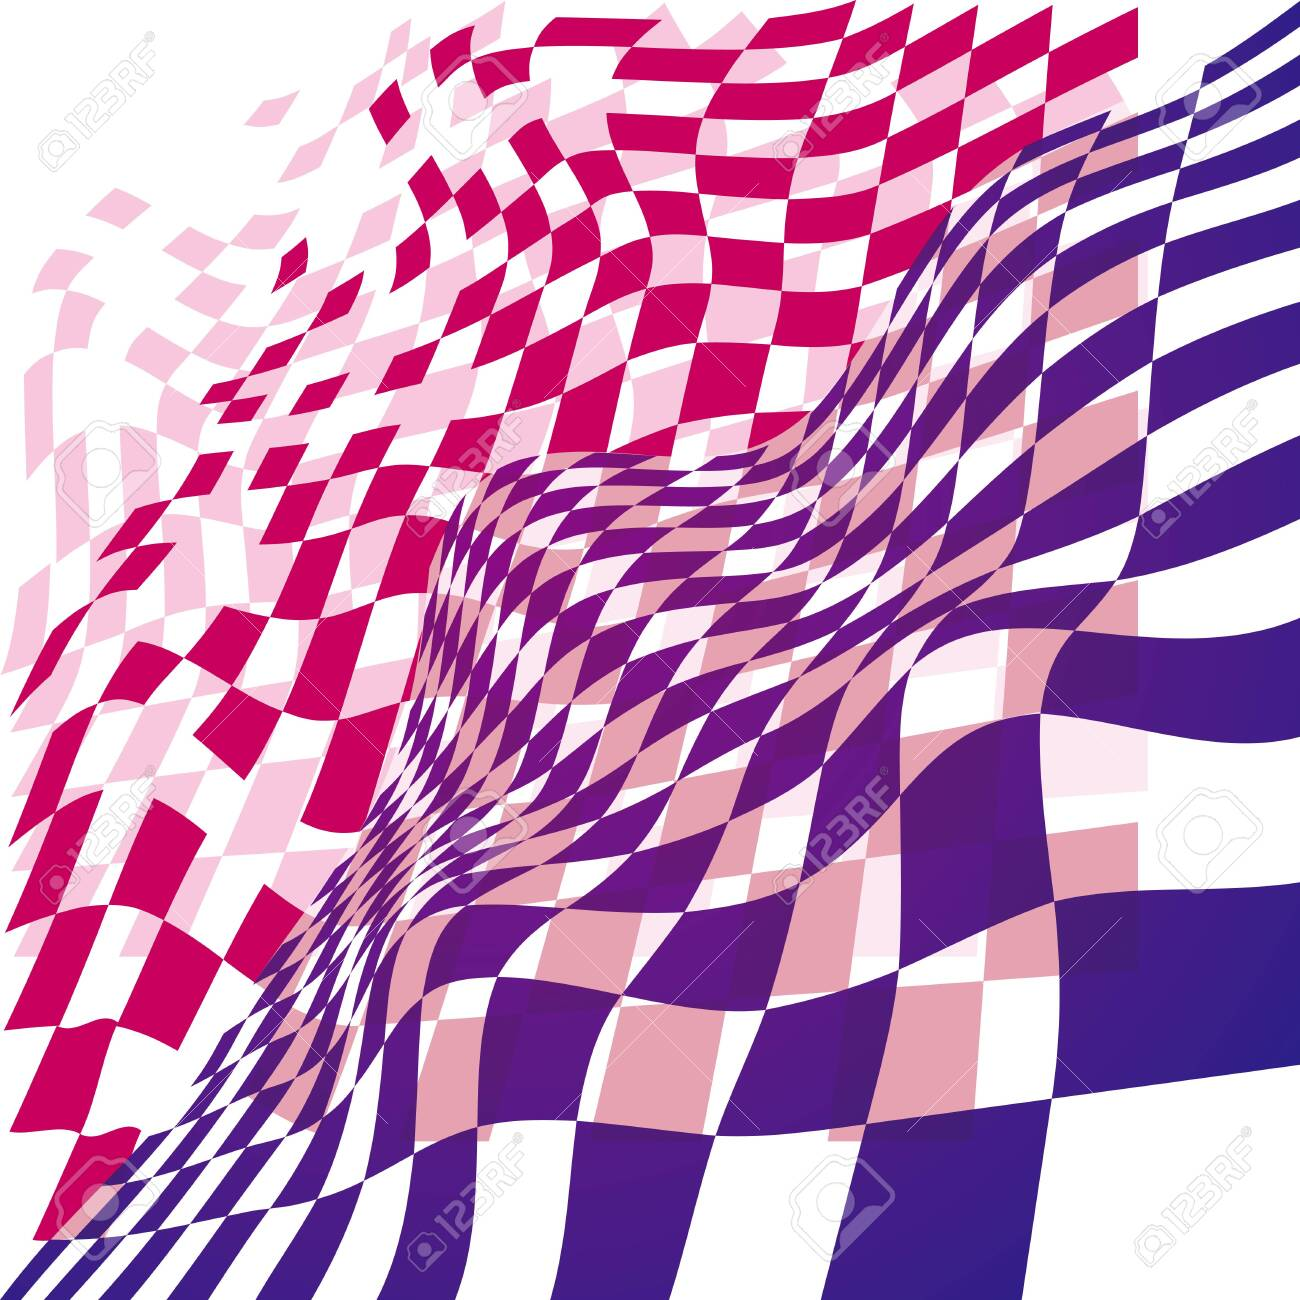 Abstract background texture. A twisted surface. - 131432203